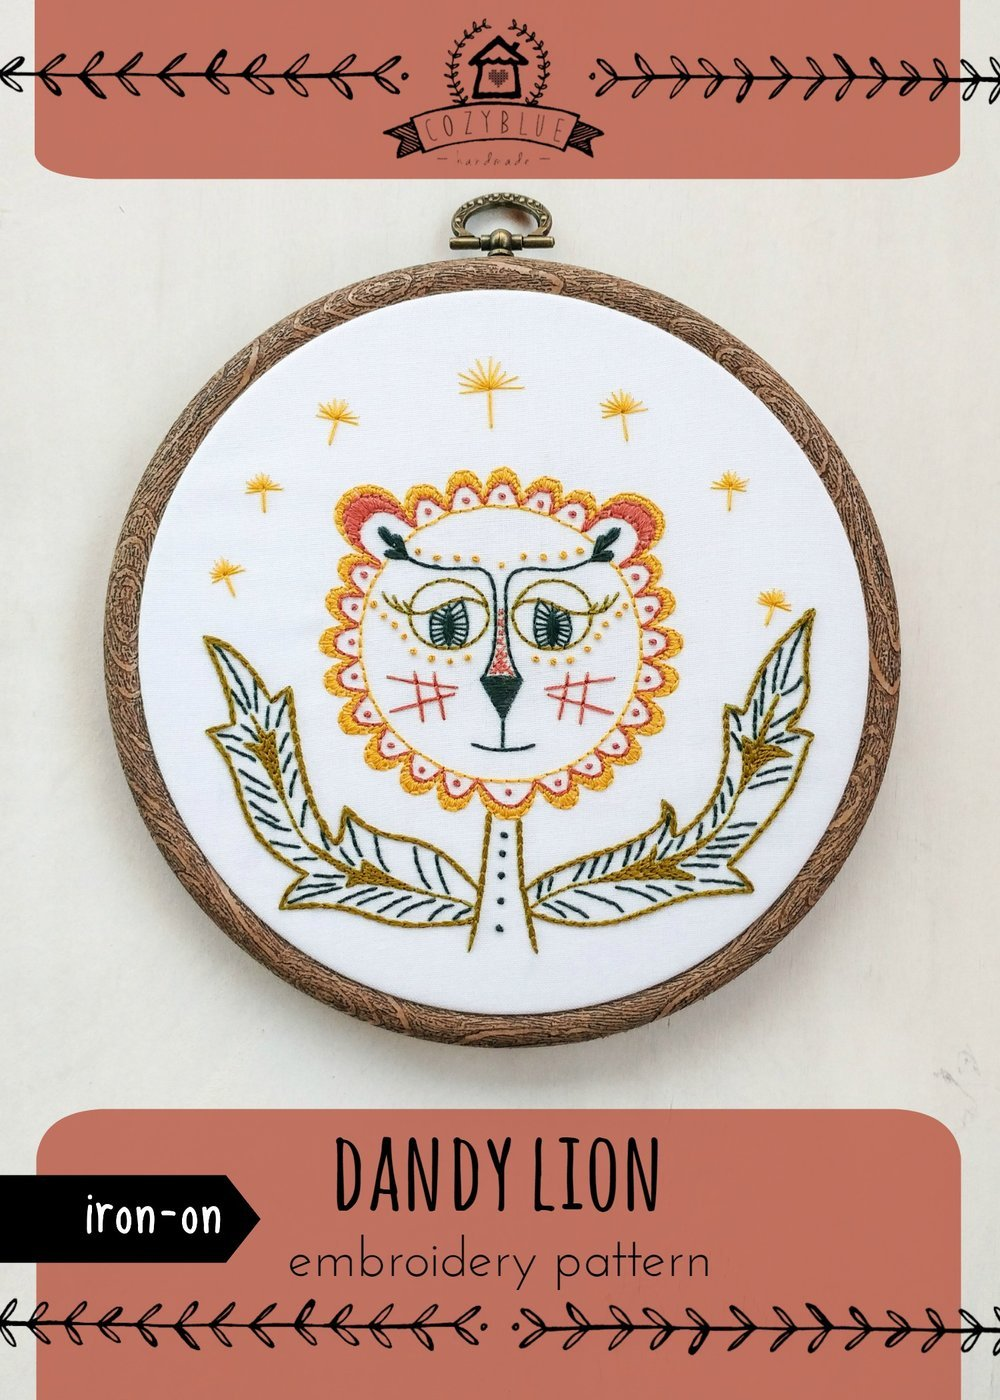 Dandy Lion Iron-On Embroidery Pattern